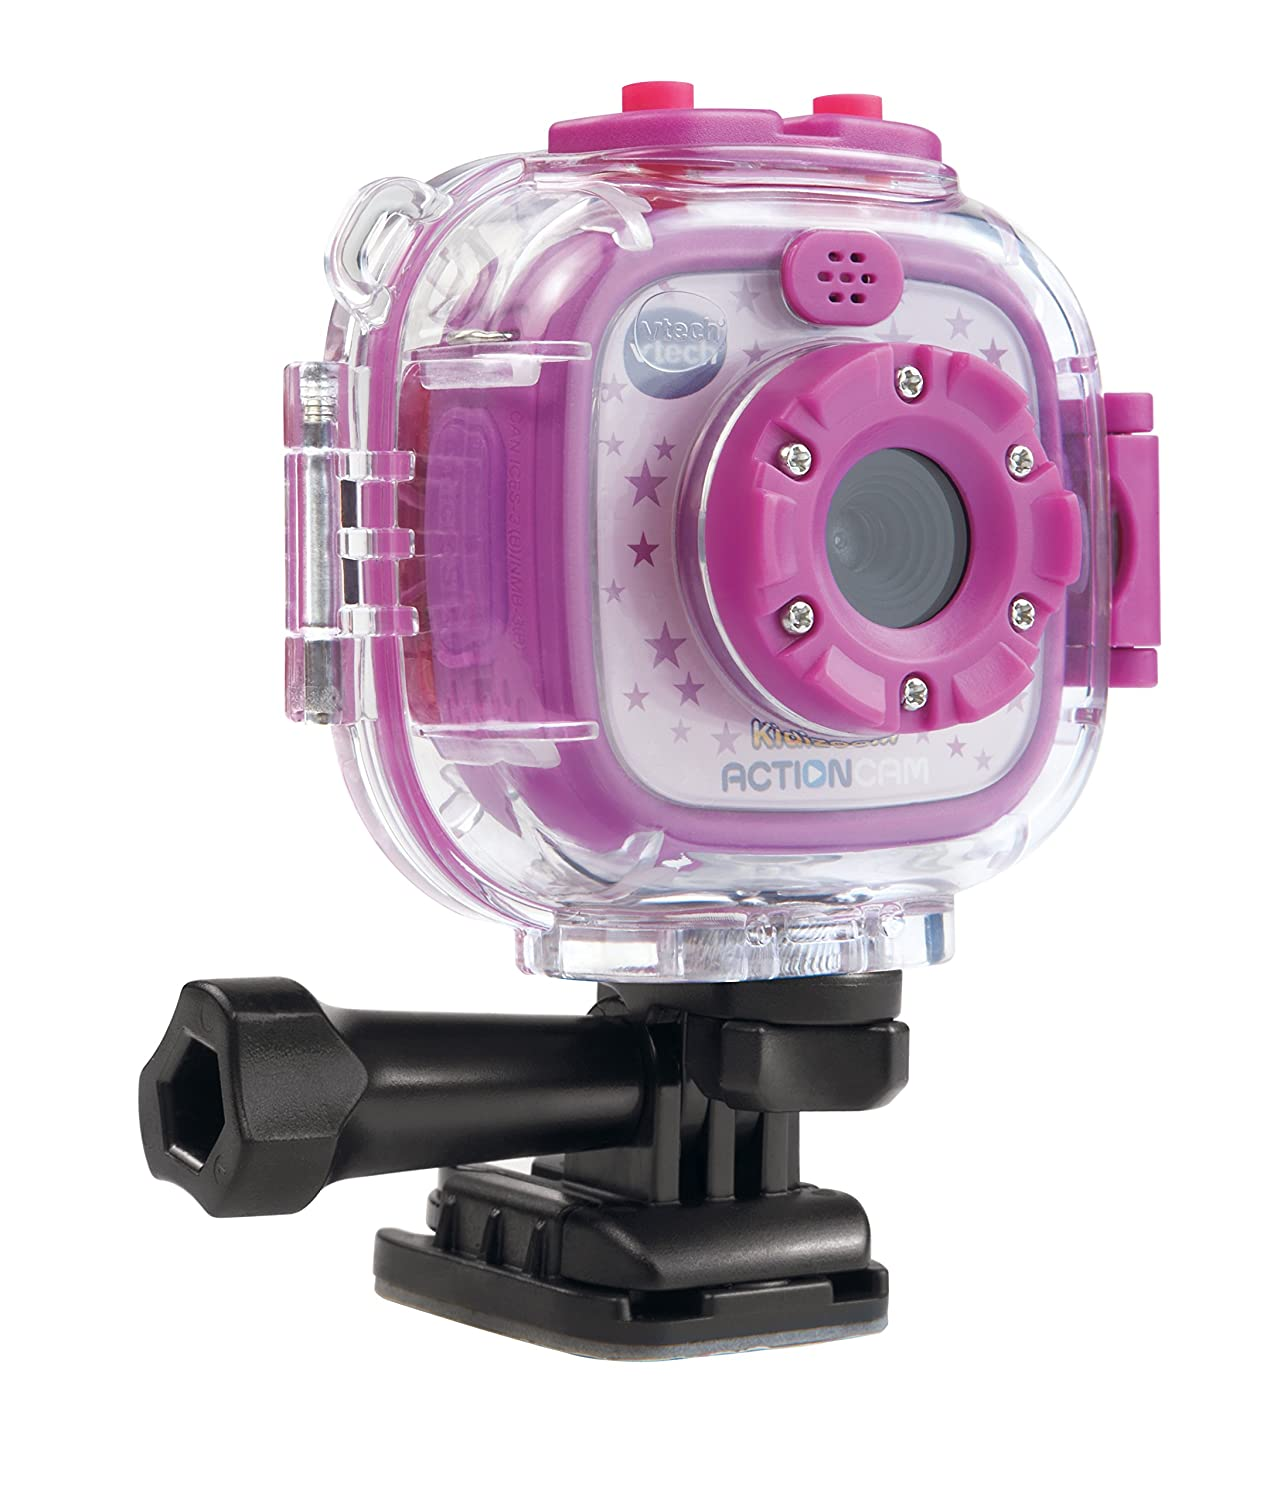 VTech Kidizoom Action Cam, Purple 80-170710